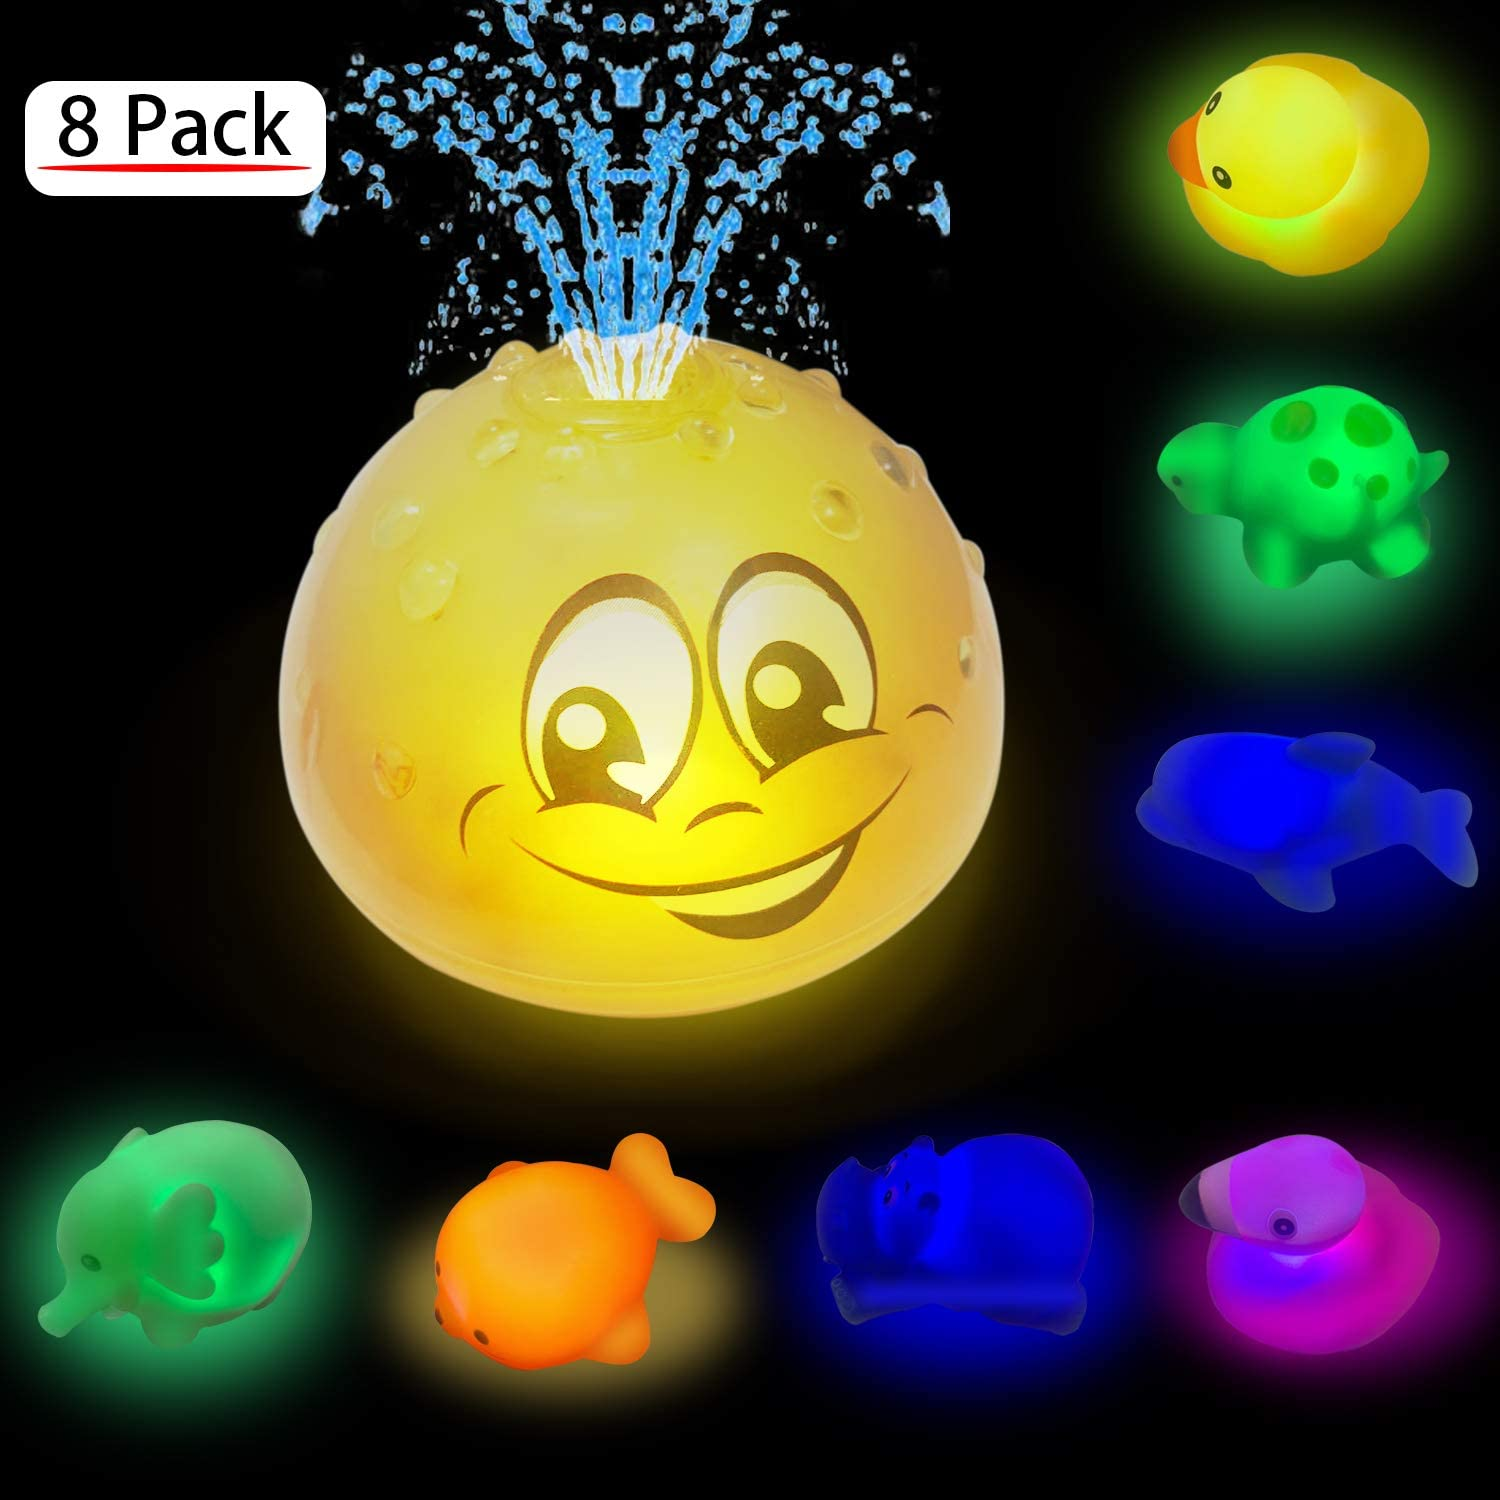 Bath Toys, Induction Spray Water Squirt Toy, 8 Pack LED Light Up Animals Bathtub Toy, Floating Rubber Dolphin Water Toys, Shower Pool Bathroom Toy for Baby Toddler Infant Kid Electronic Sprayer